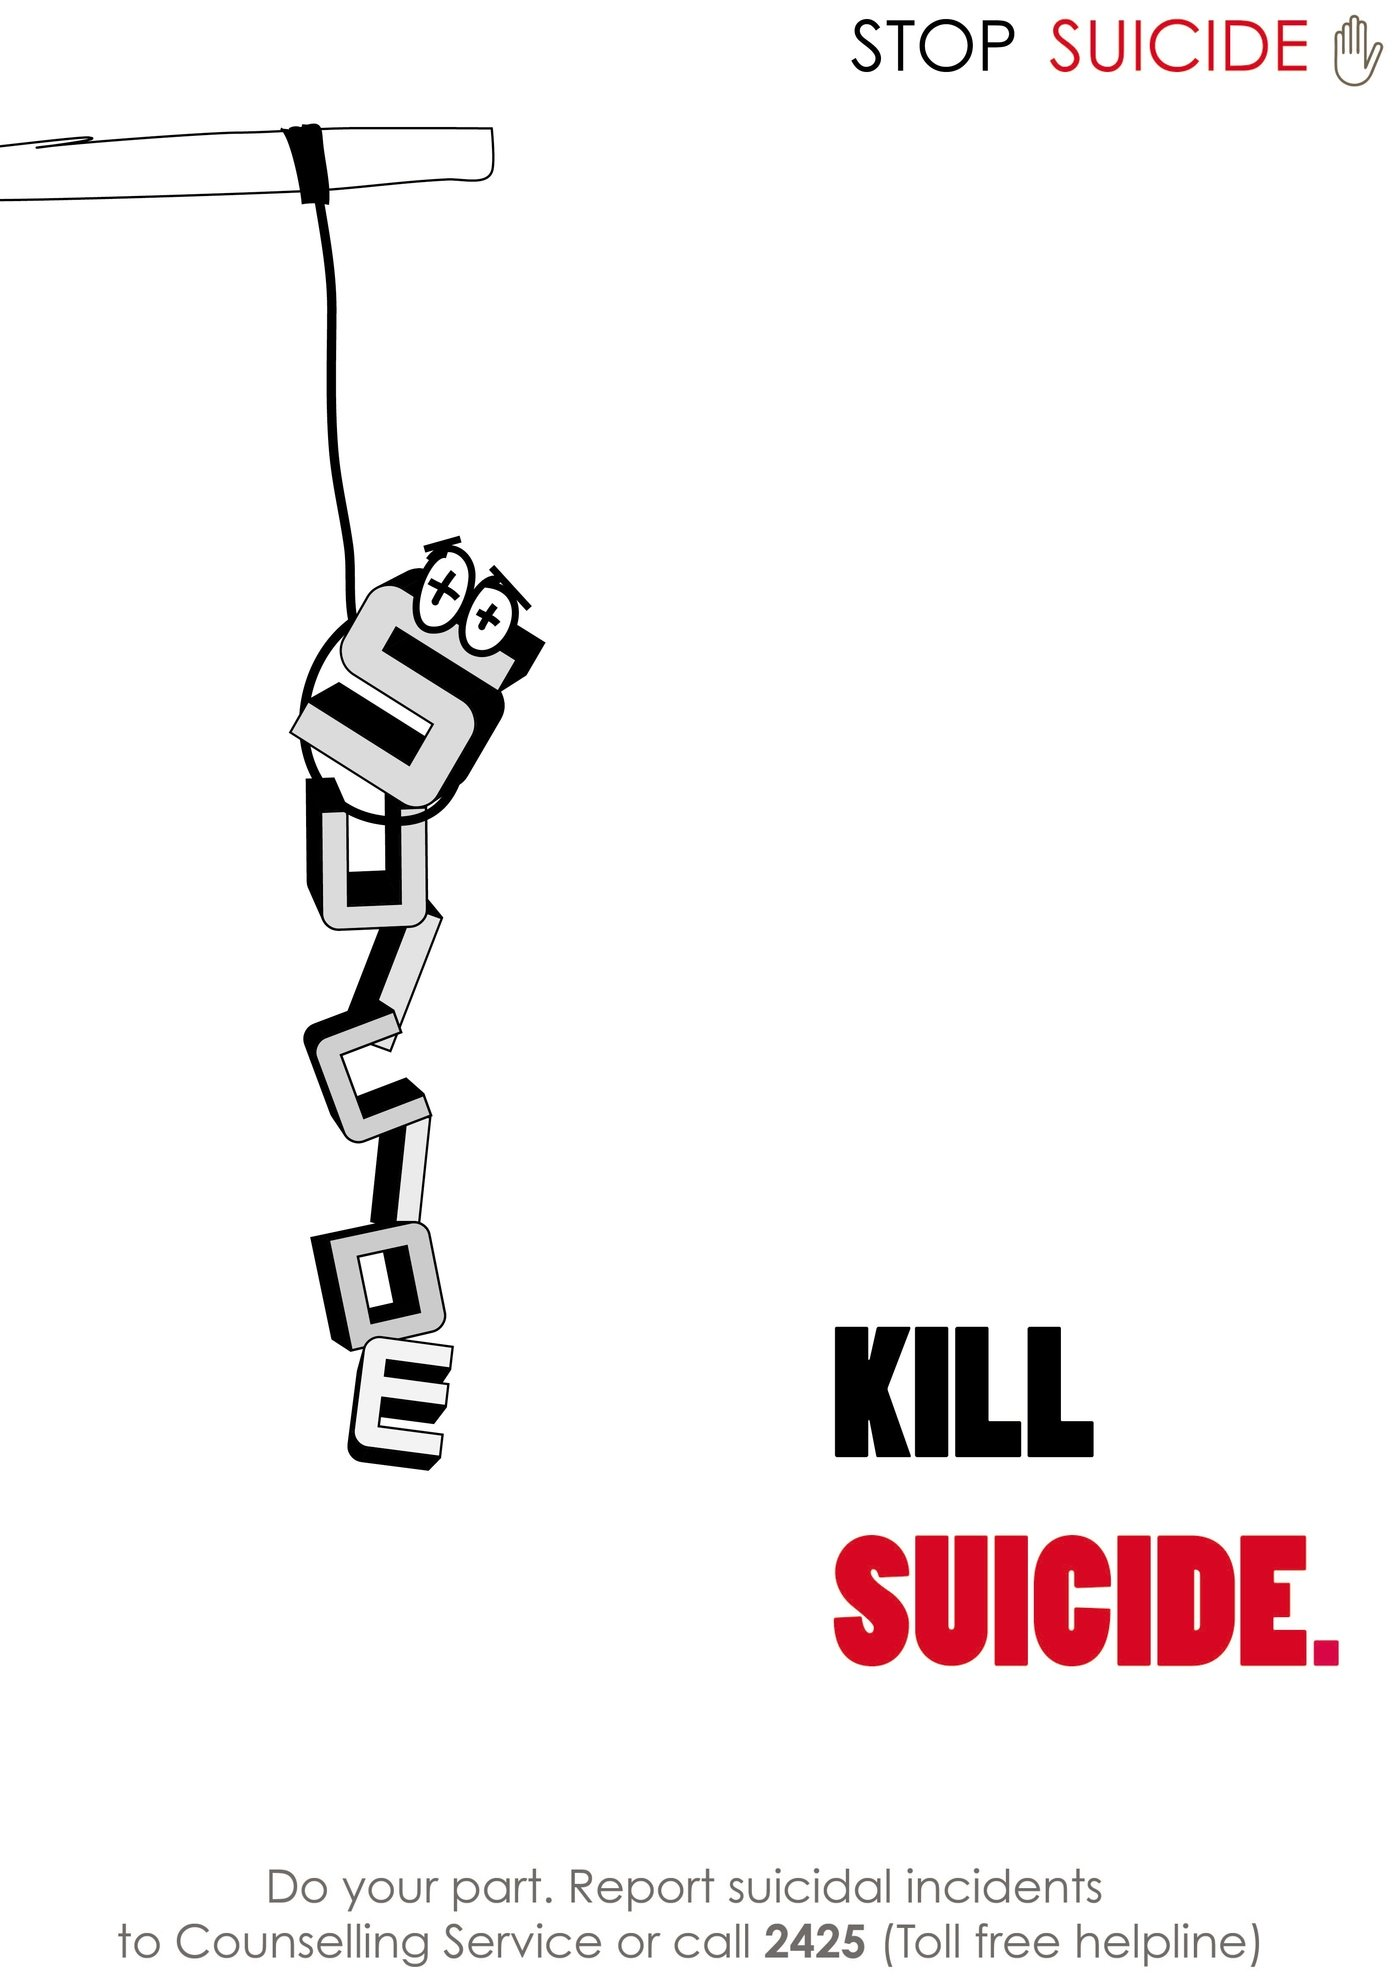 Anti Suicide Poster Design by Rahul Mittra at Coroflot.com